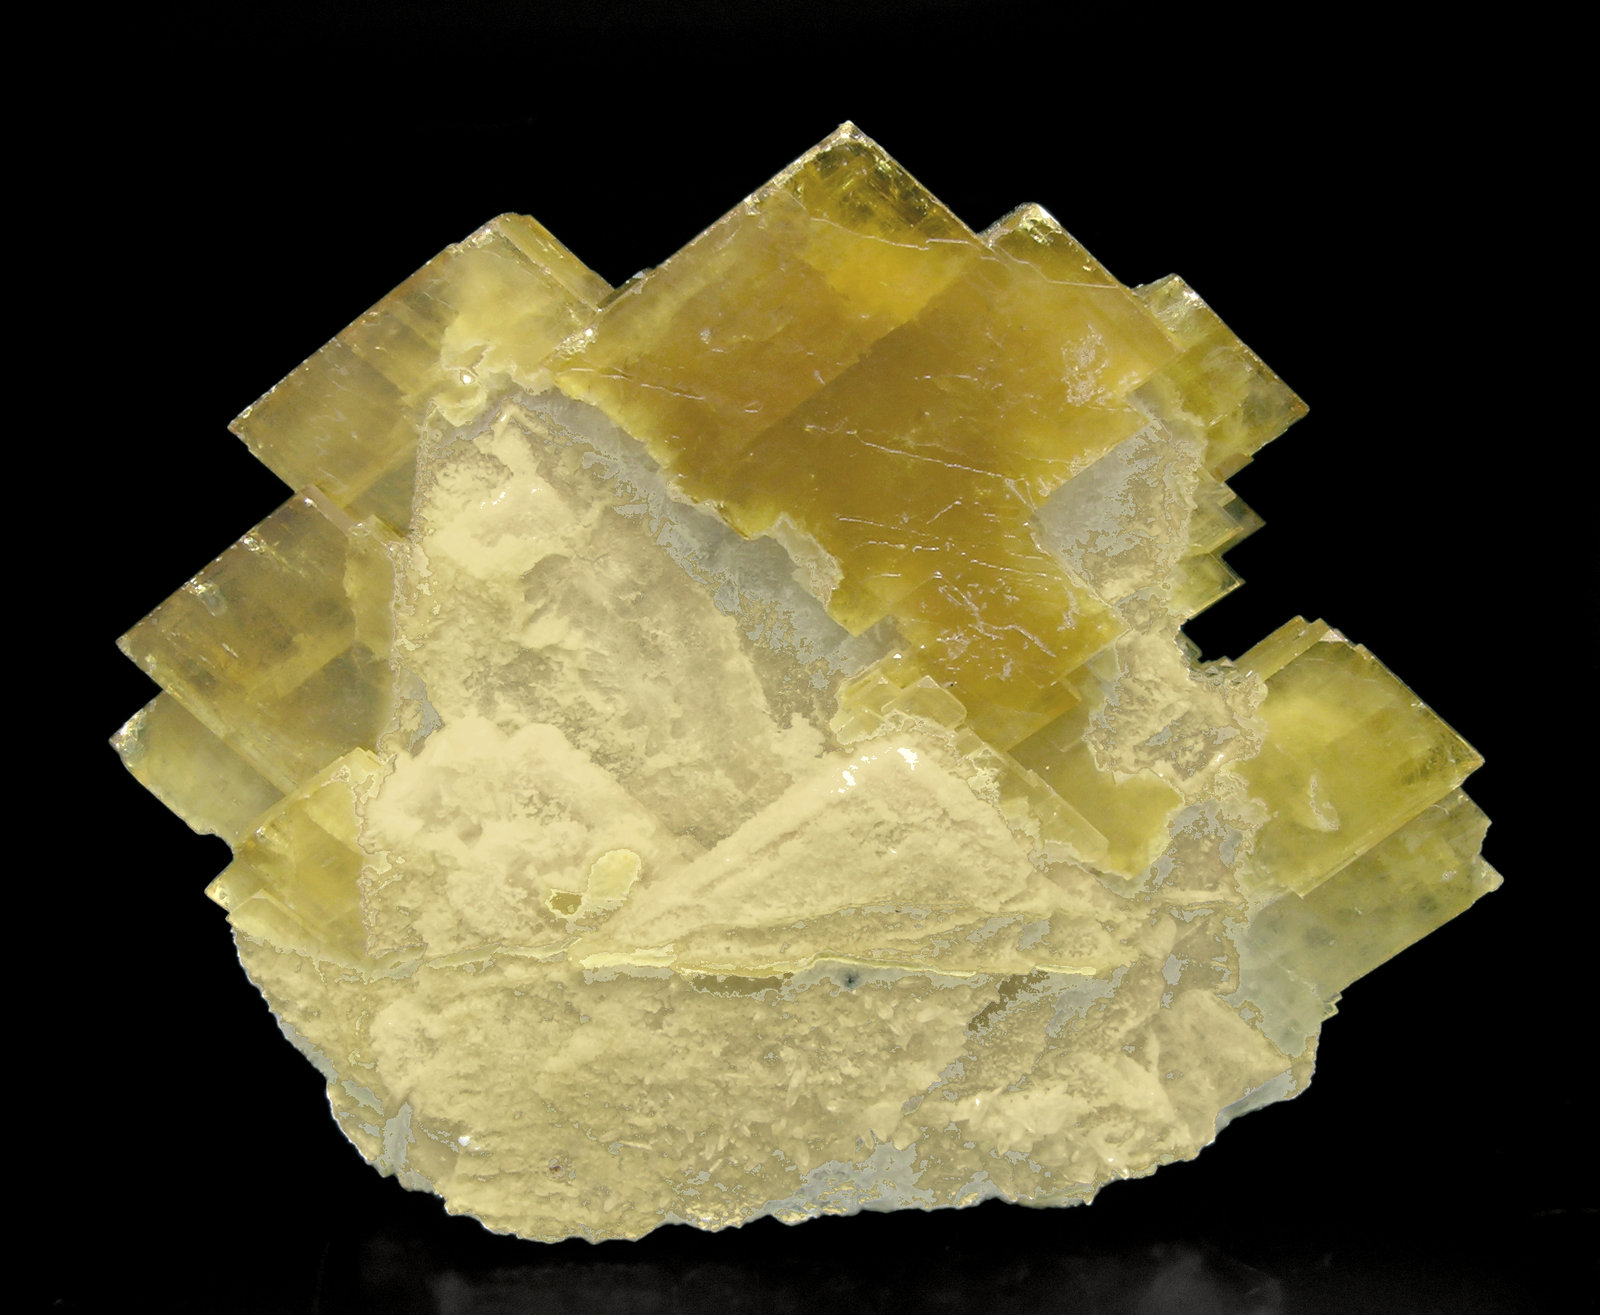 specimens/s_imagesM8/Doubly_terminated_Barite-KH86M8r.jpg